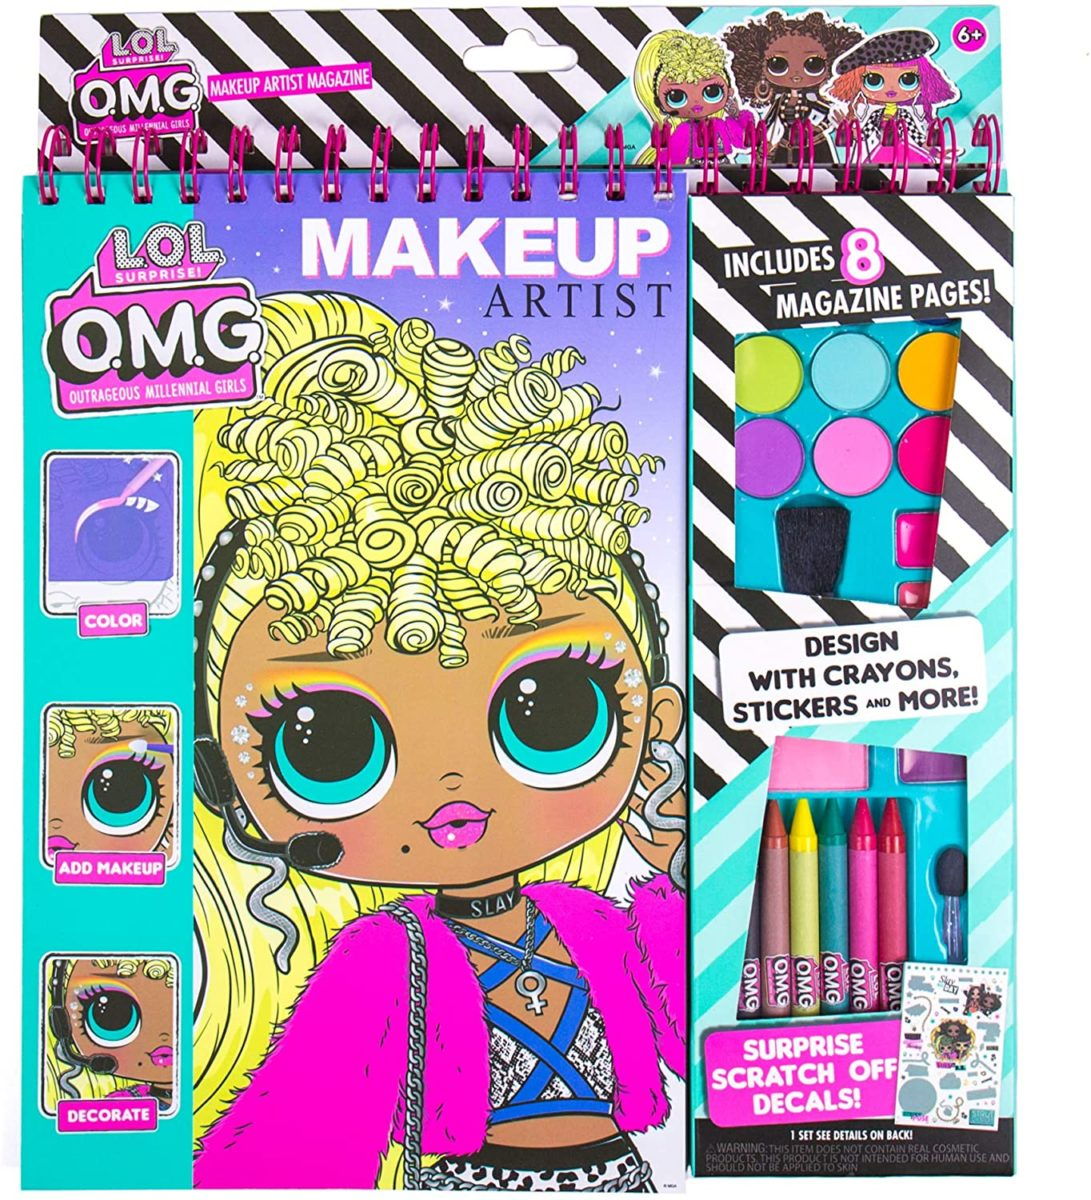 l.o.l. omg makeup artist toys under $20 that you can give your child as rewards for good behavior